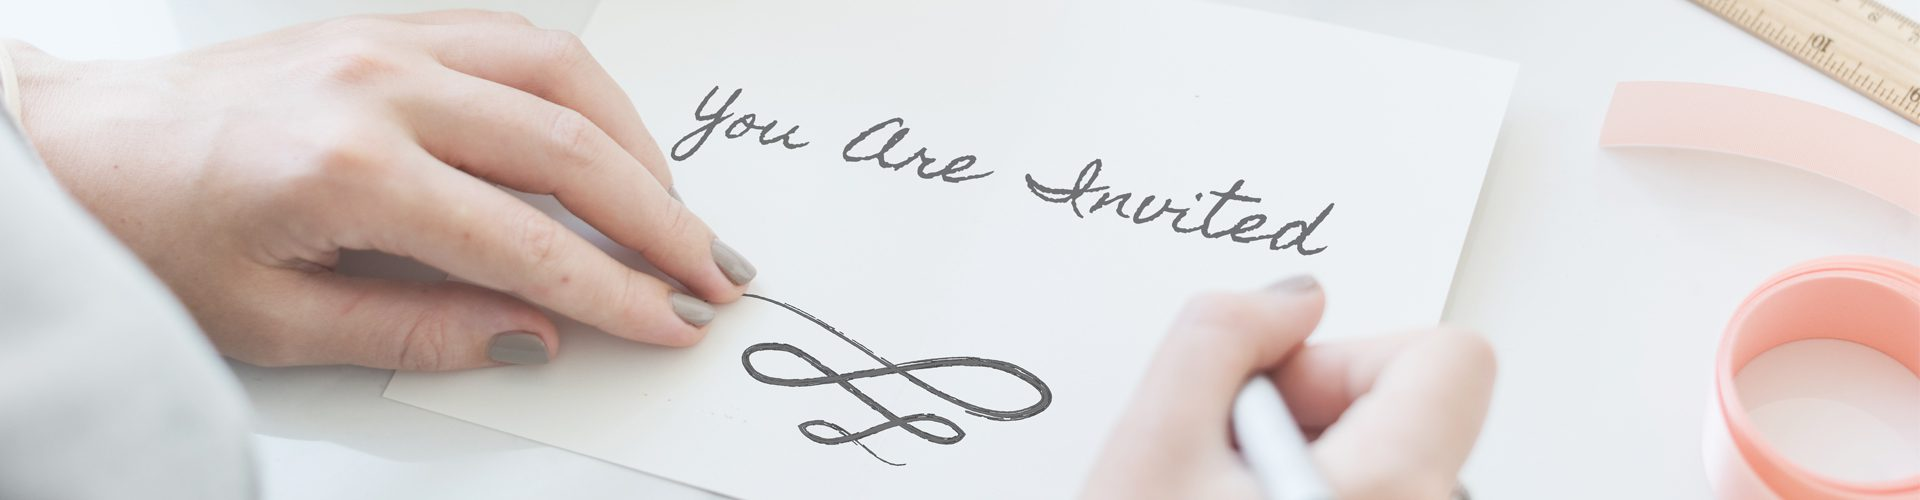 Designing The Perfect Invitation - letter saying you are invited